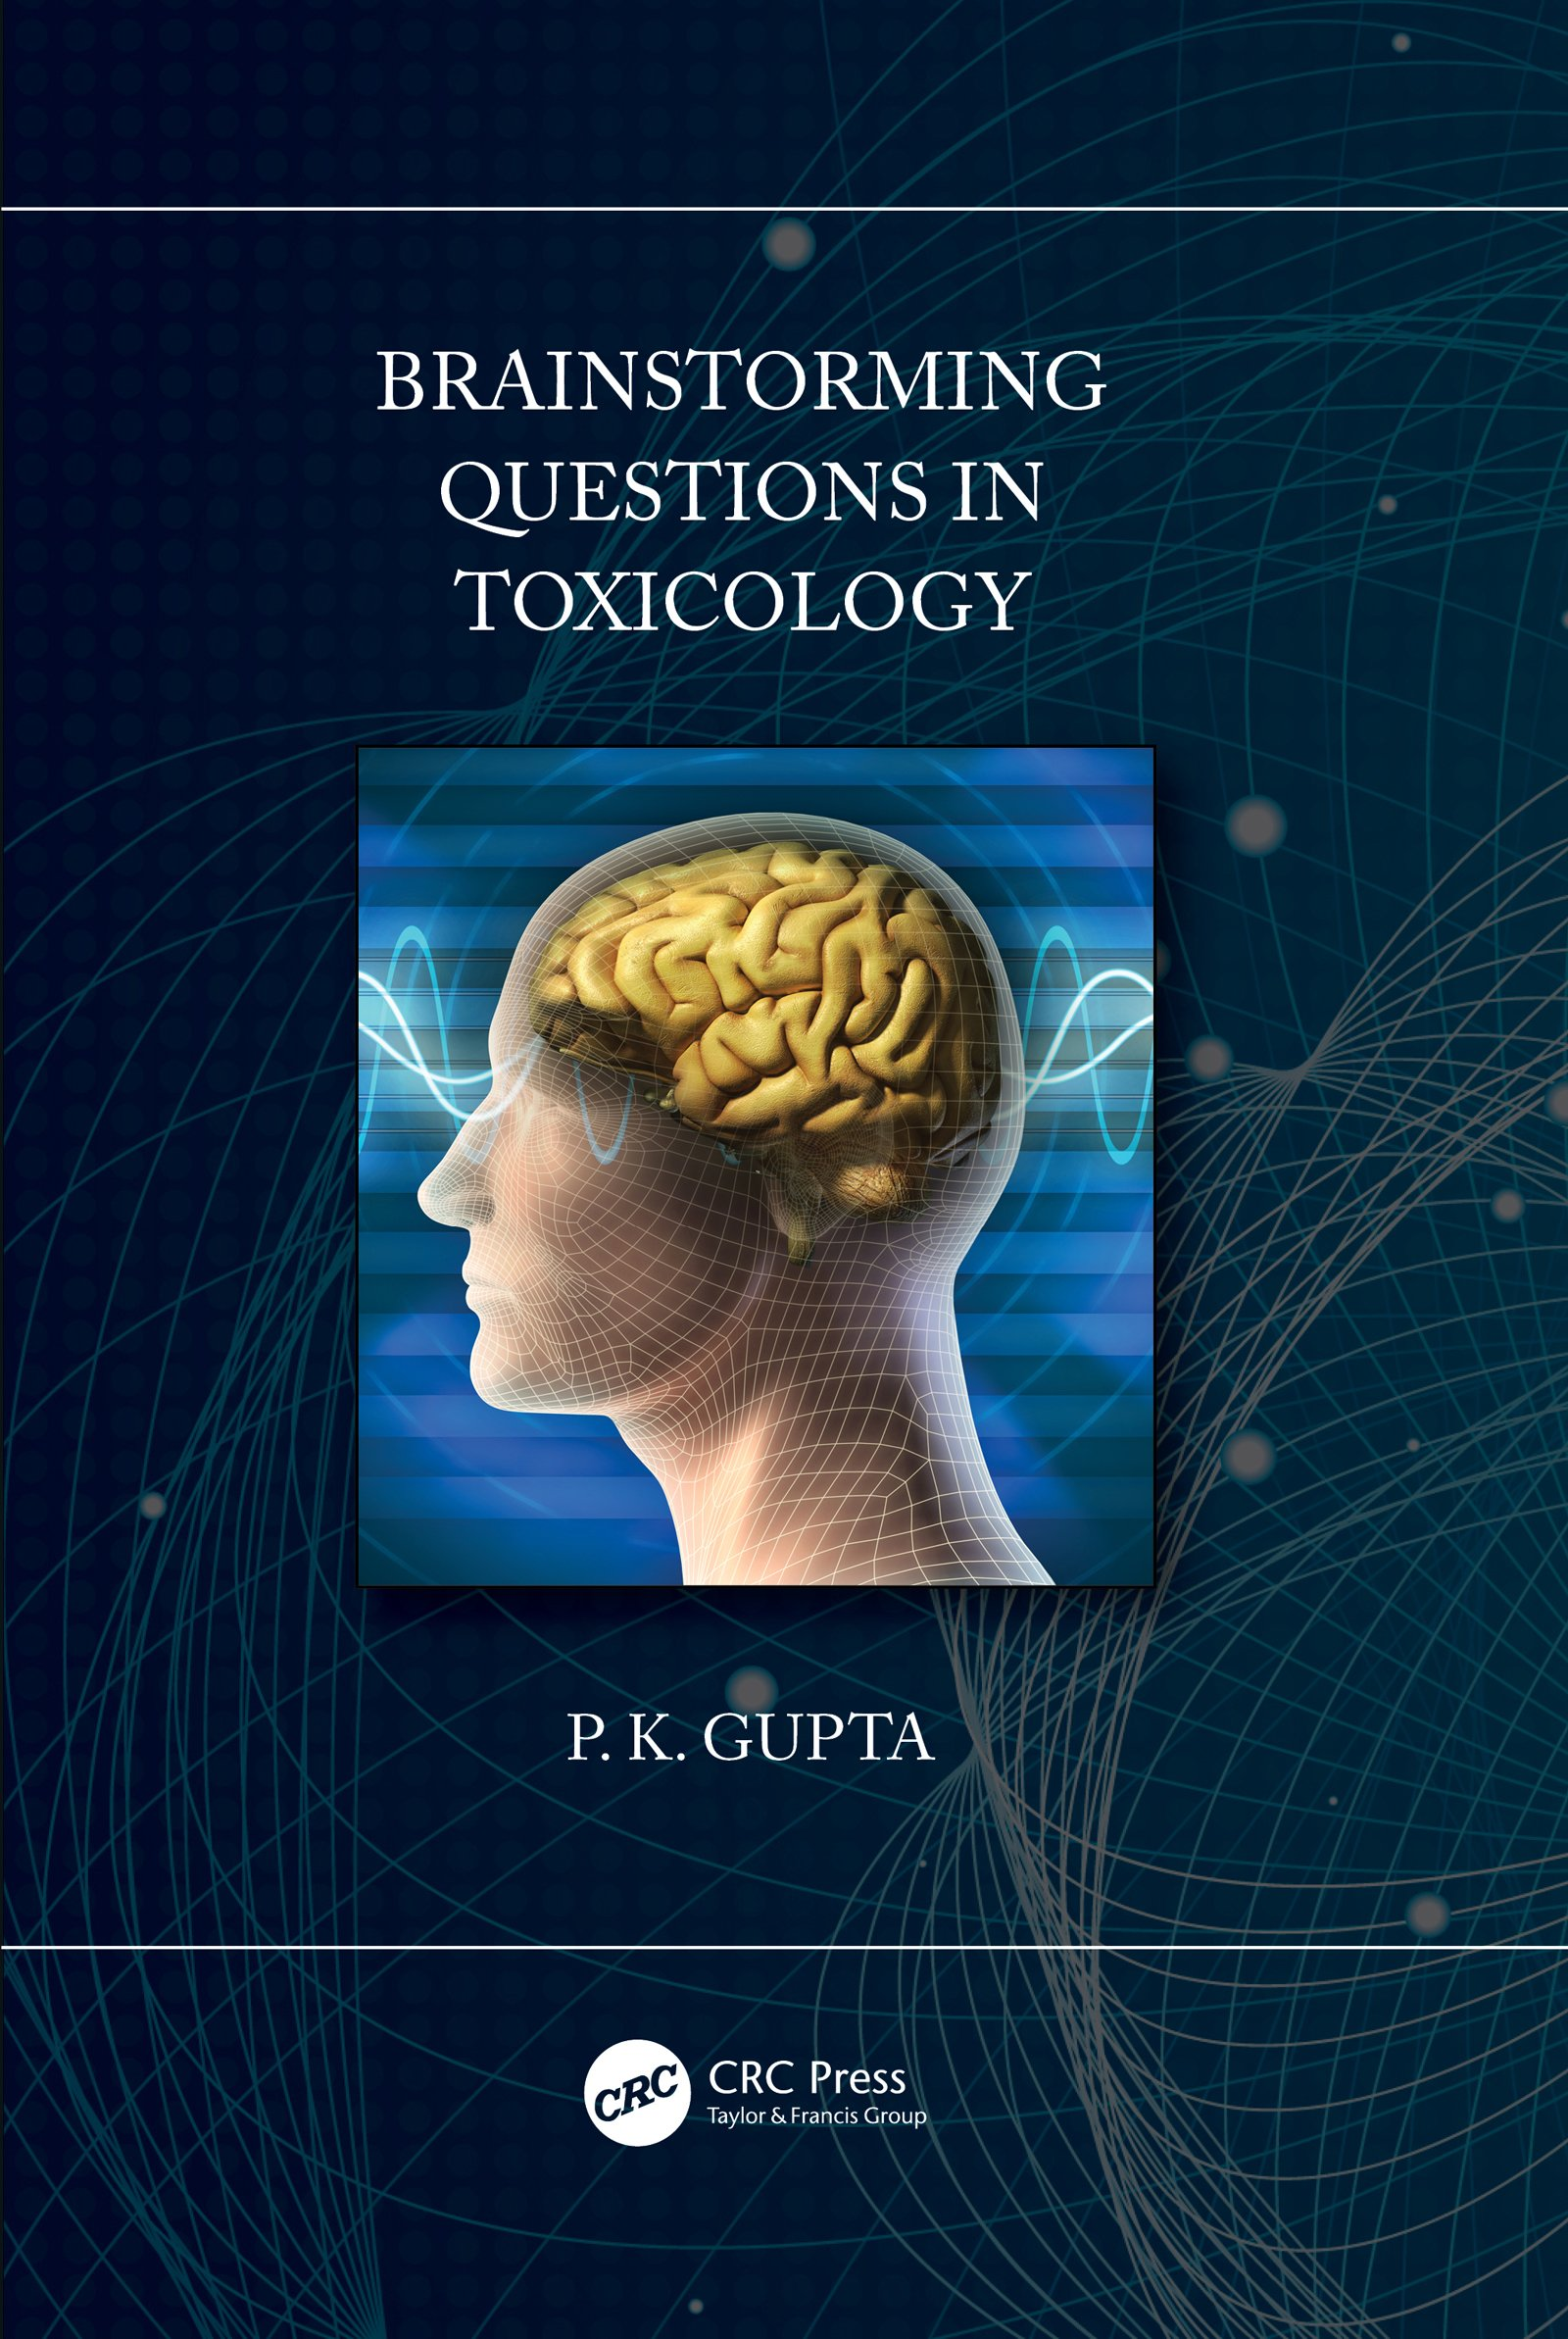 Brainstorming Questions in Toxicology book cover